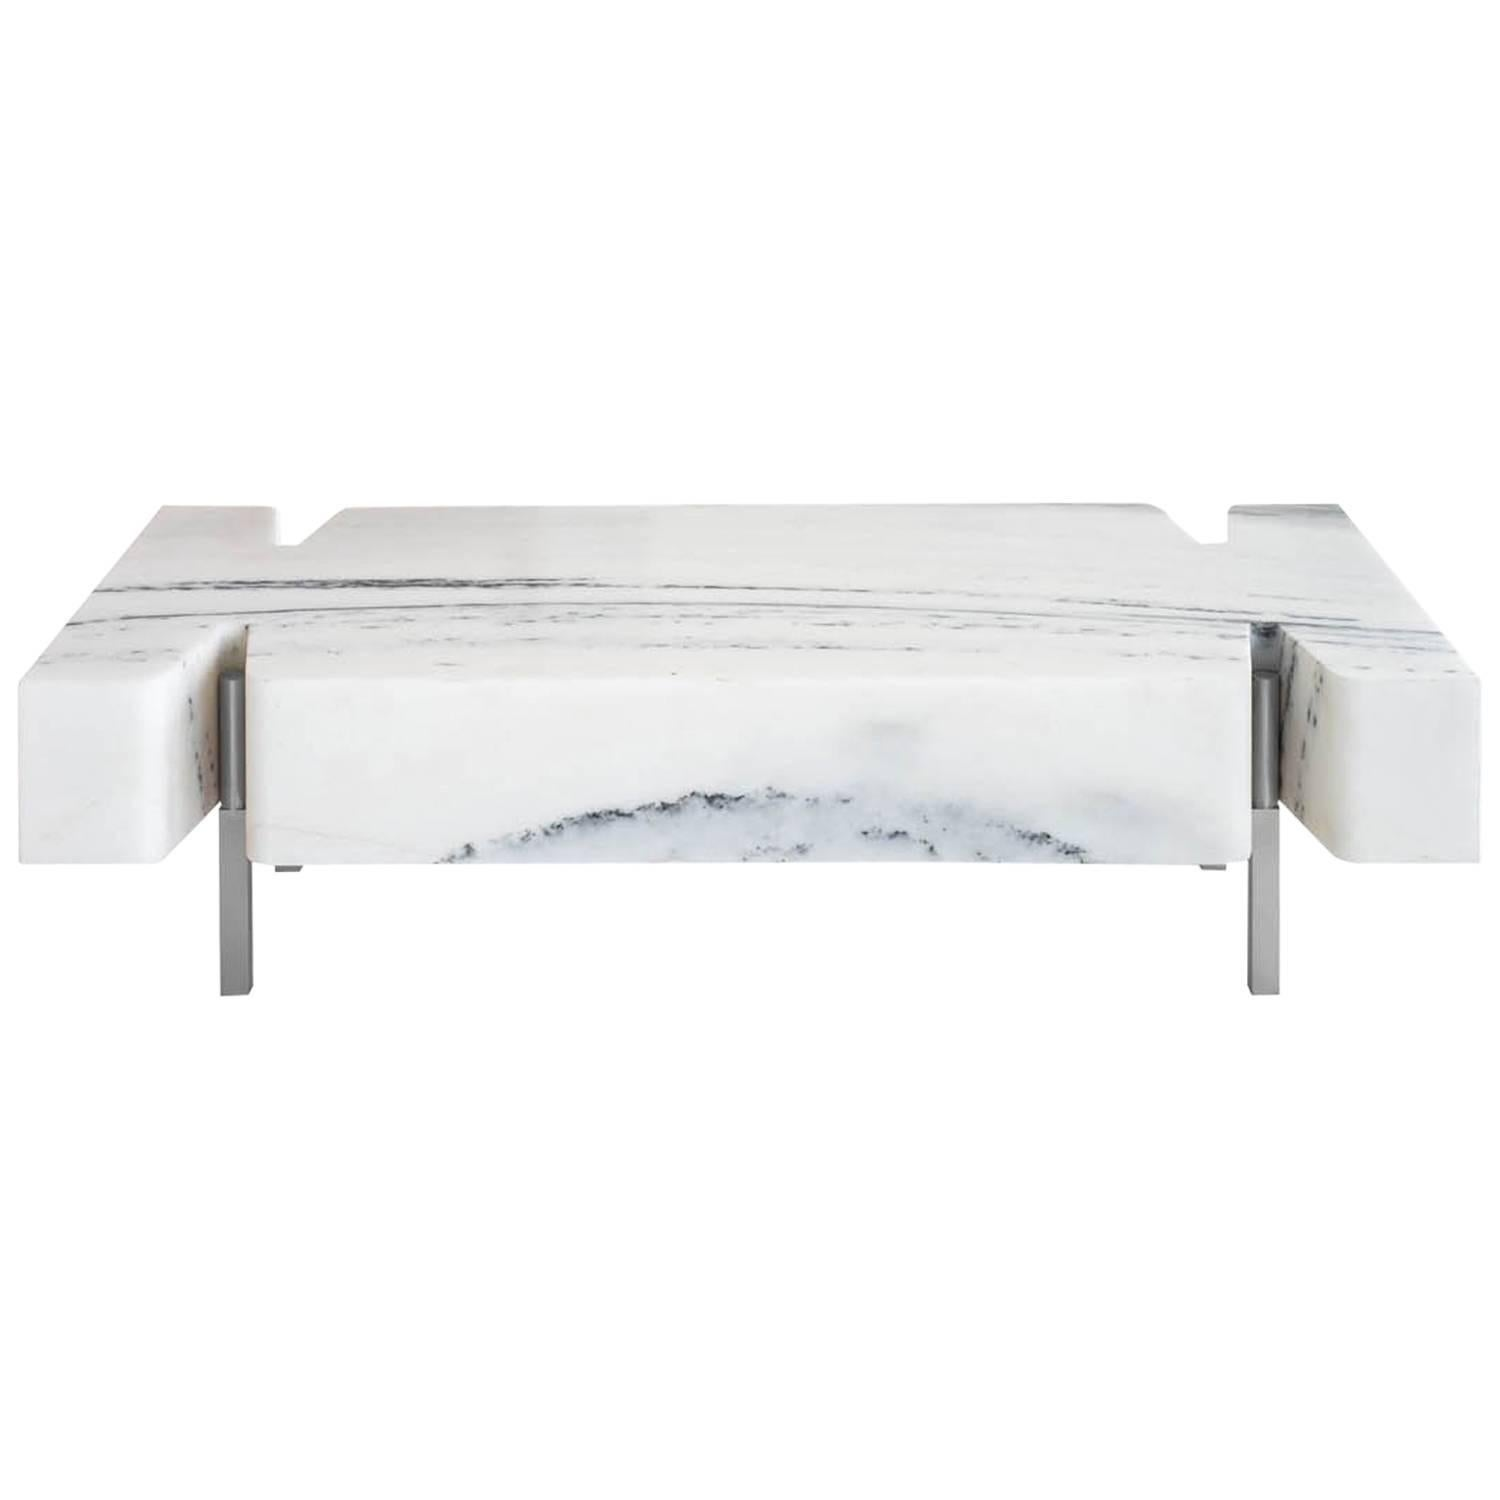 Terranova Coffee Table Or Cocktail Table With Hewn Marble Top And Nickel  Base